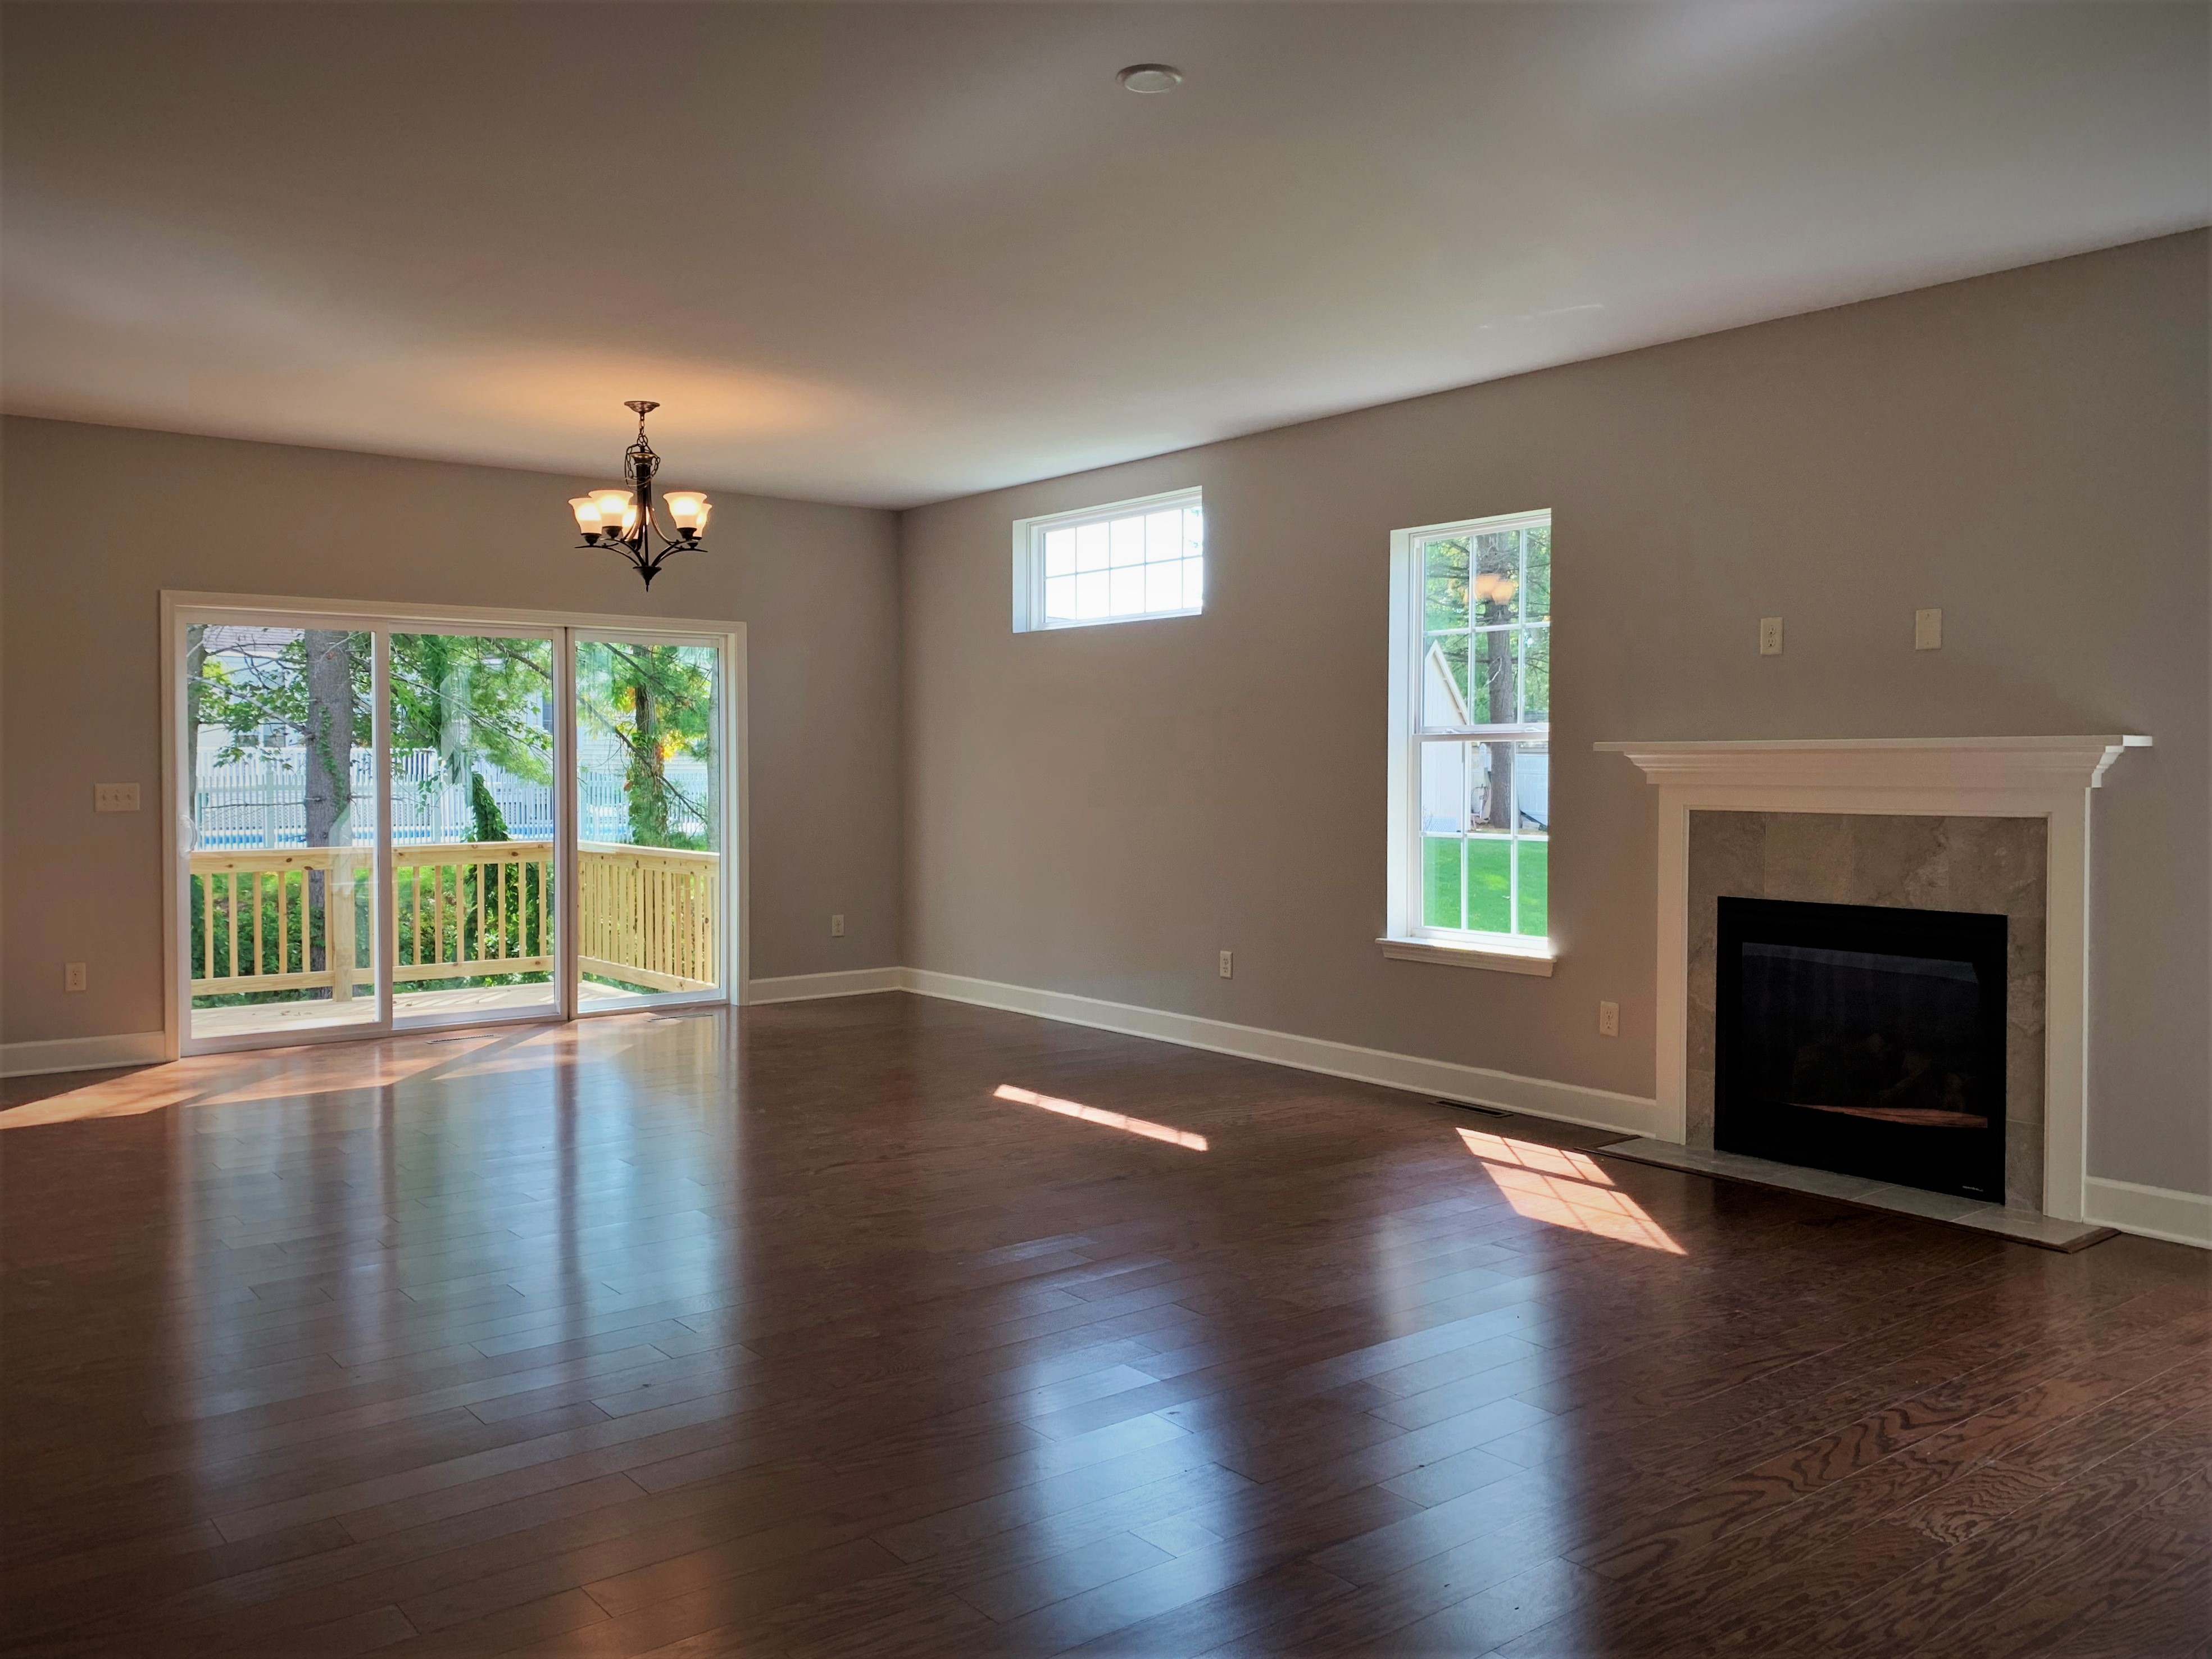 Dining/Great Room area with Triple Slider Door, Hardwood Floors and Gas Fireplace with Tile Surround and White Mantel